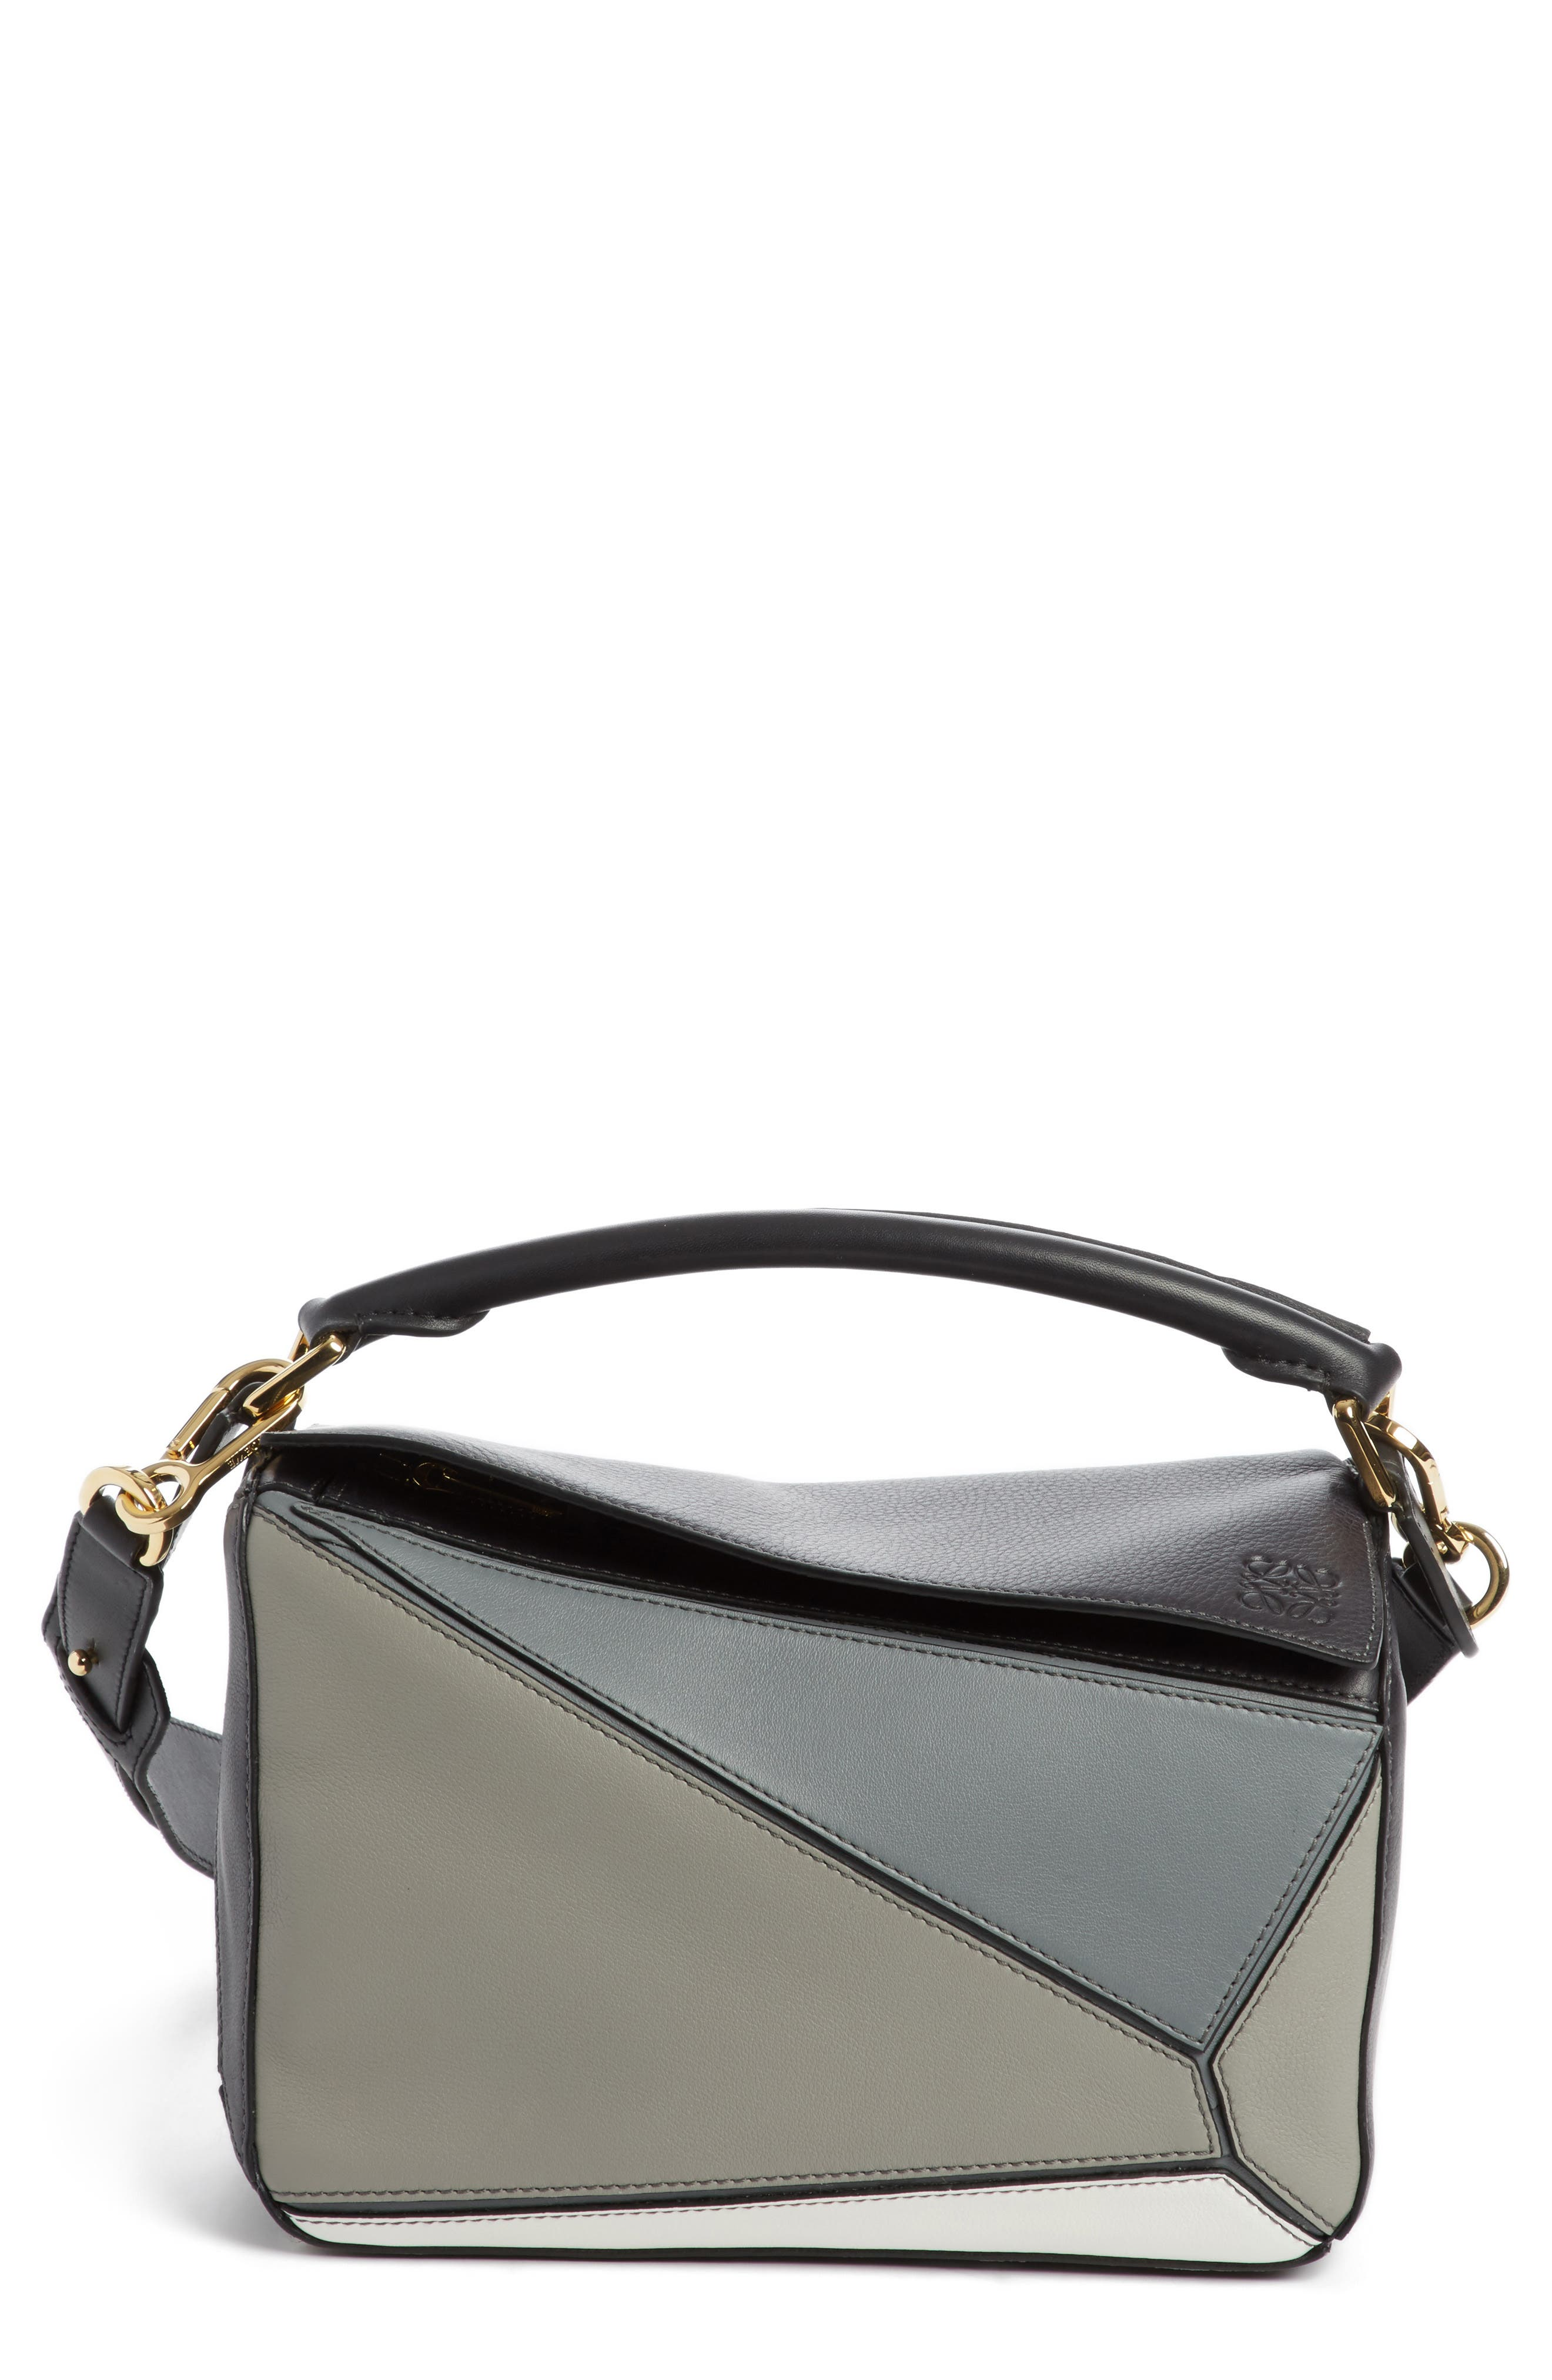 Small Puzzle Colorblock Calfskin Leather Bag,                             Main thumbnail 1, color,                             Grey Multi Tone